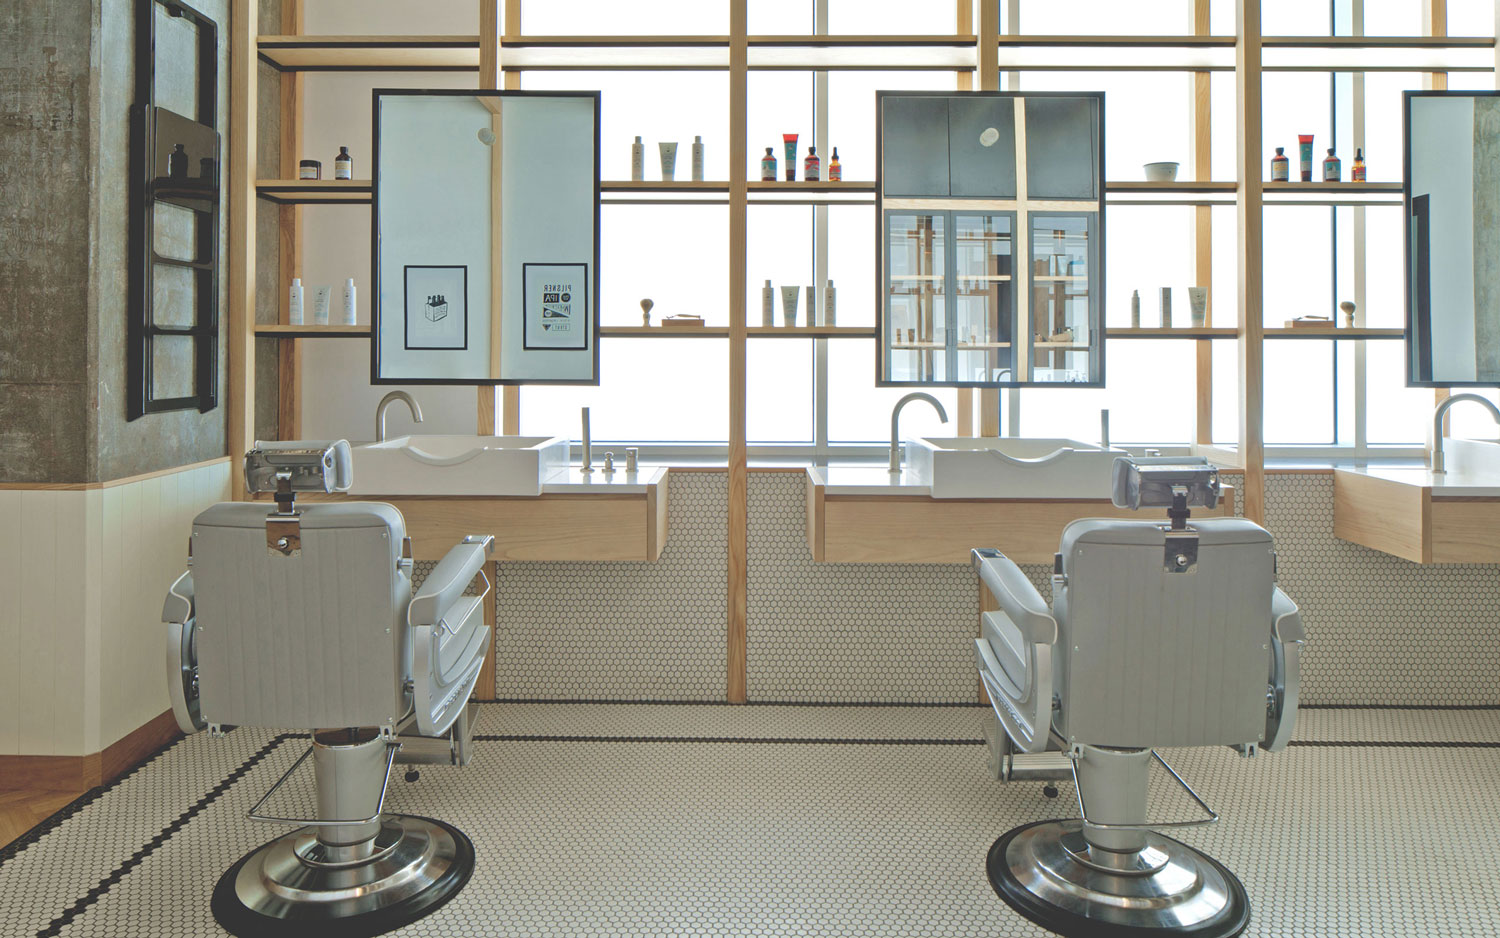 AKIN Barber & Shop in Dubai | Yellowtrace